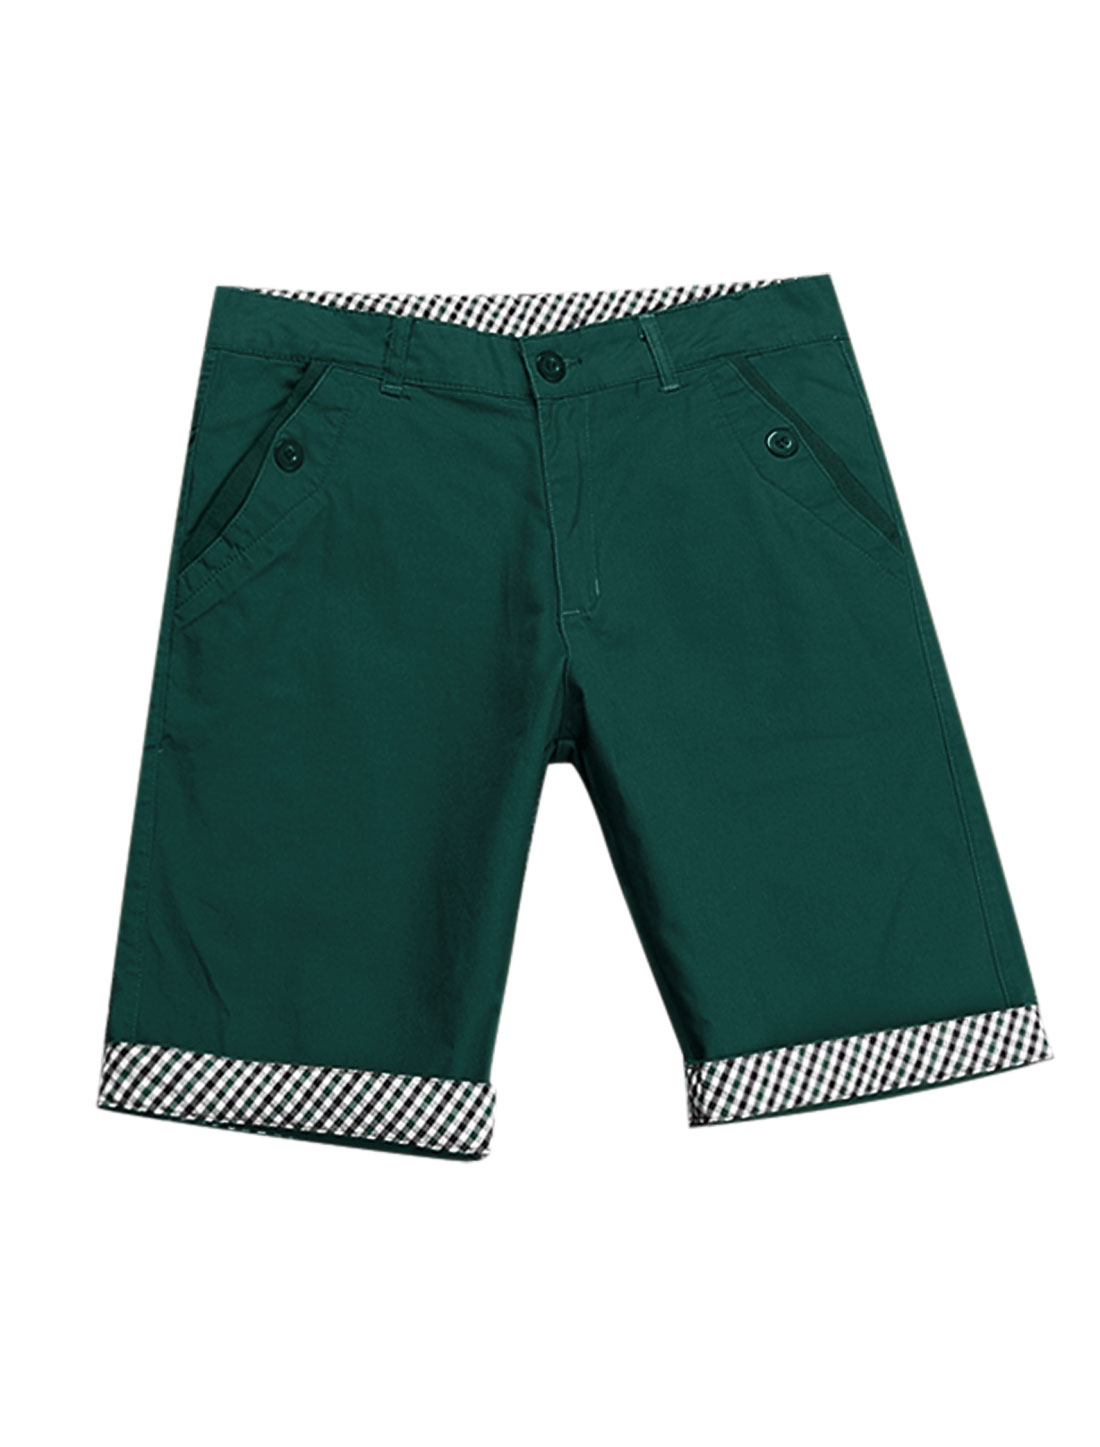 Man Mid Rise Plaids Detail One Button Closure Zip Fly Casual Shorts Dark Green W32